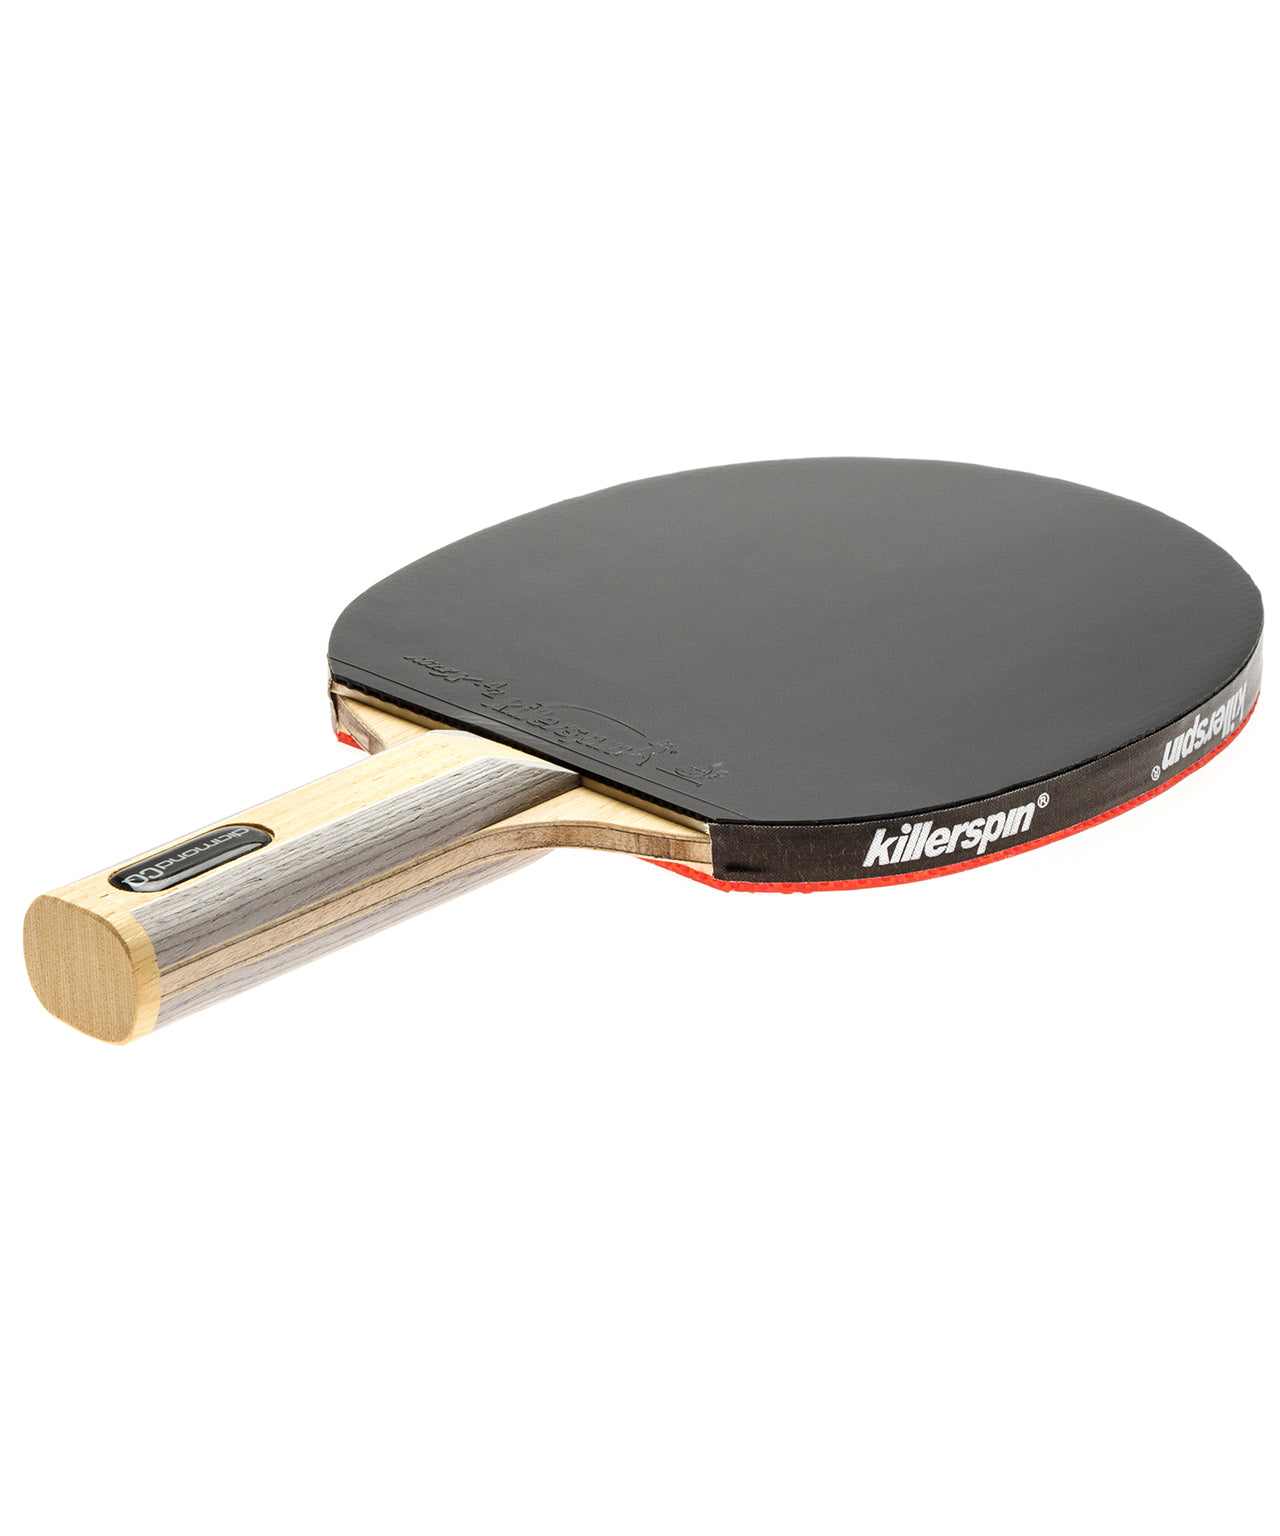 Killerspin Ping Pong Paddle Diamond CQ - Srait Handle Black Rubber